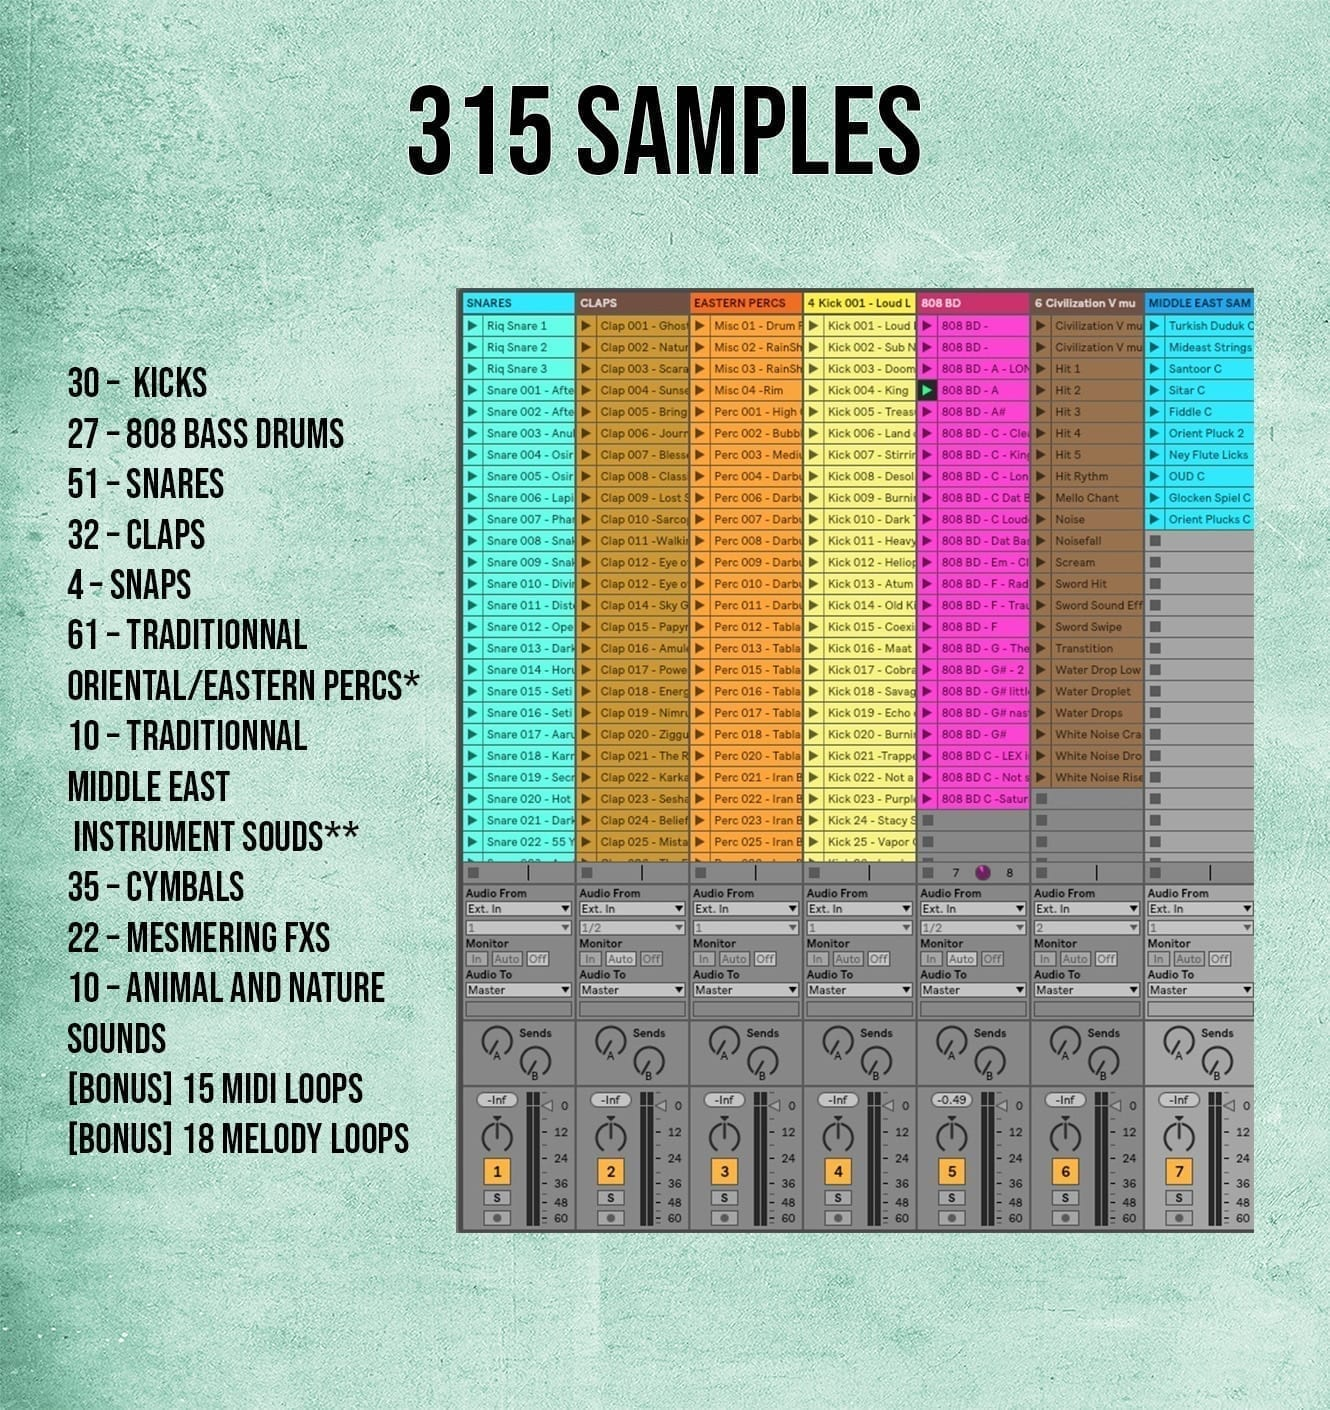 The Eye of Horus includes 315 samples